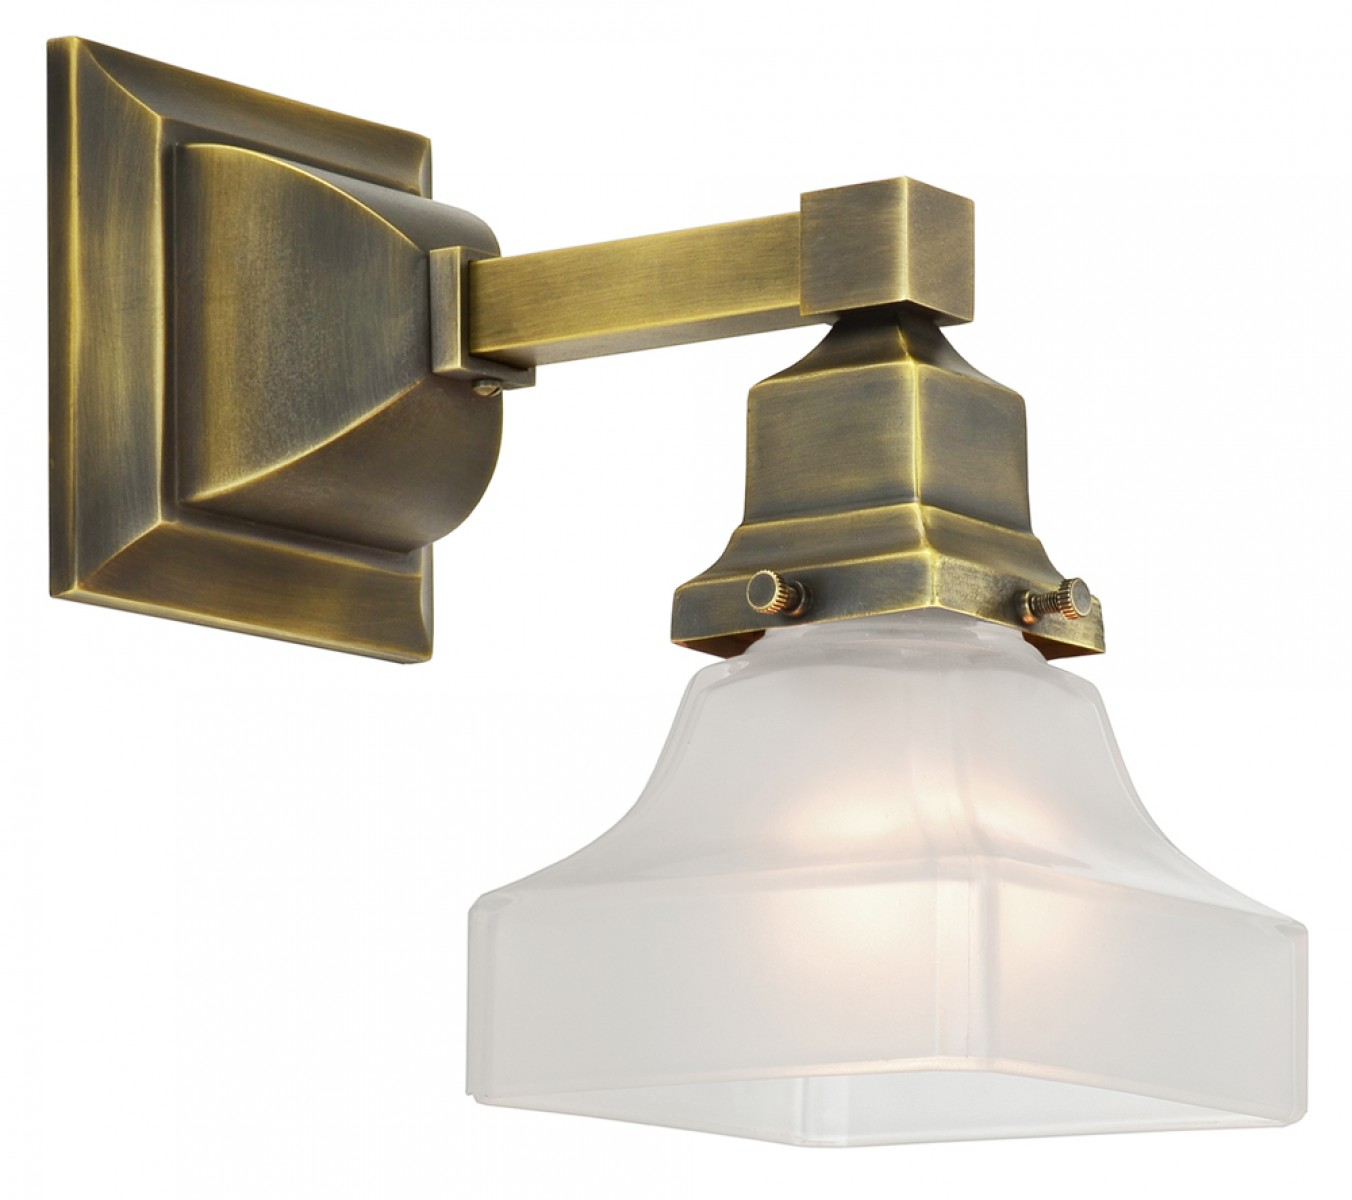 Vintage Hardware & Lighting - Mission Style Single ... on Sconces No Electric Power id=21037